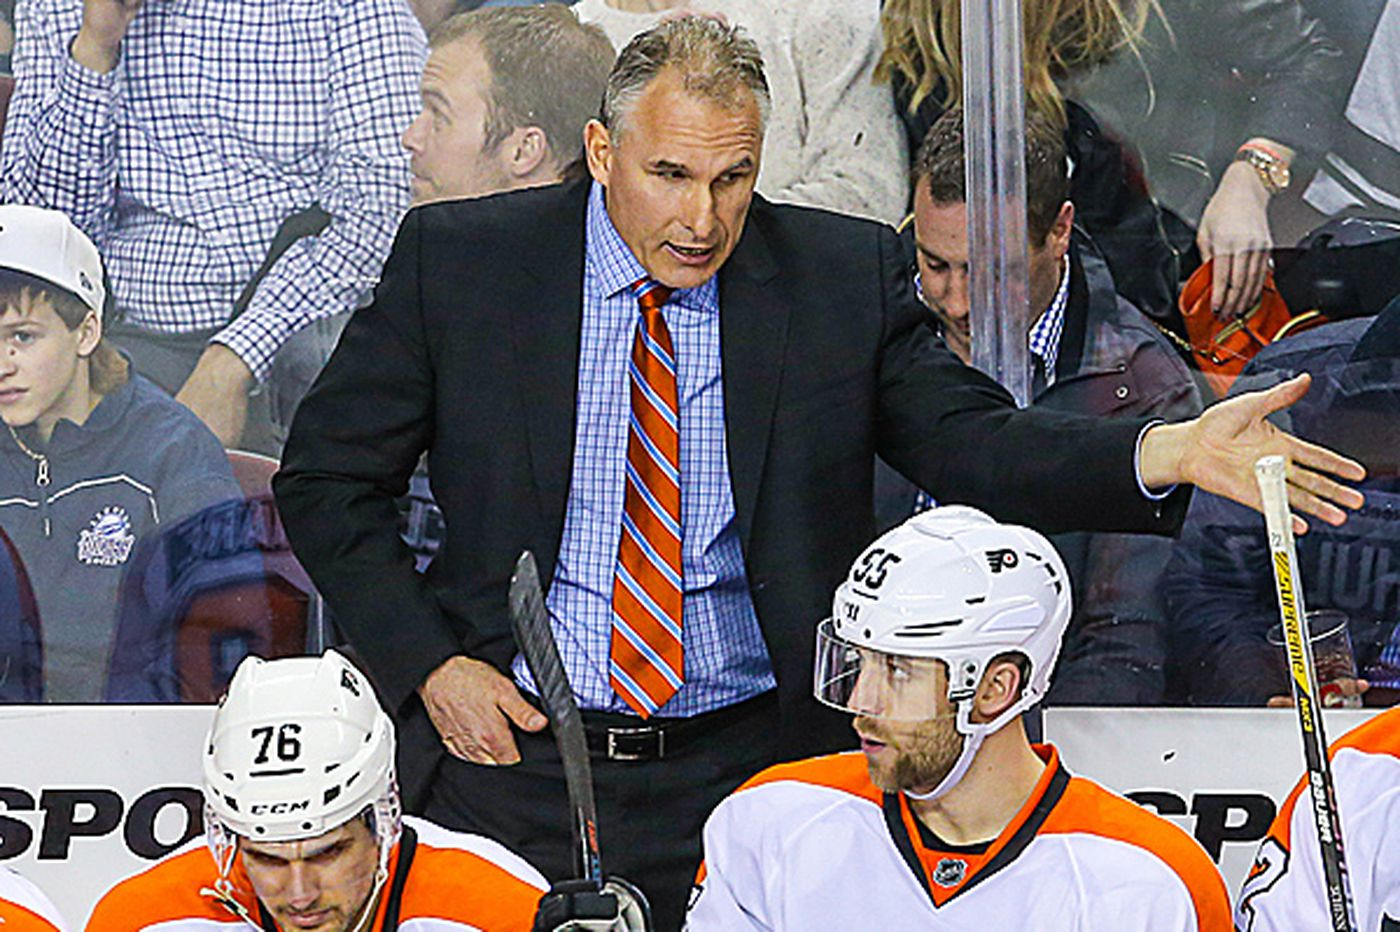 Why Hextall should surprise everyone and keep Berube